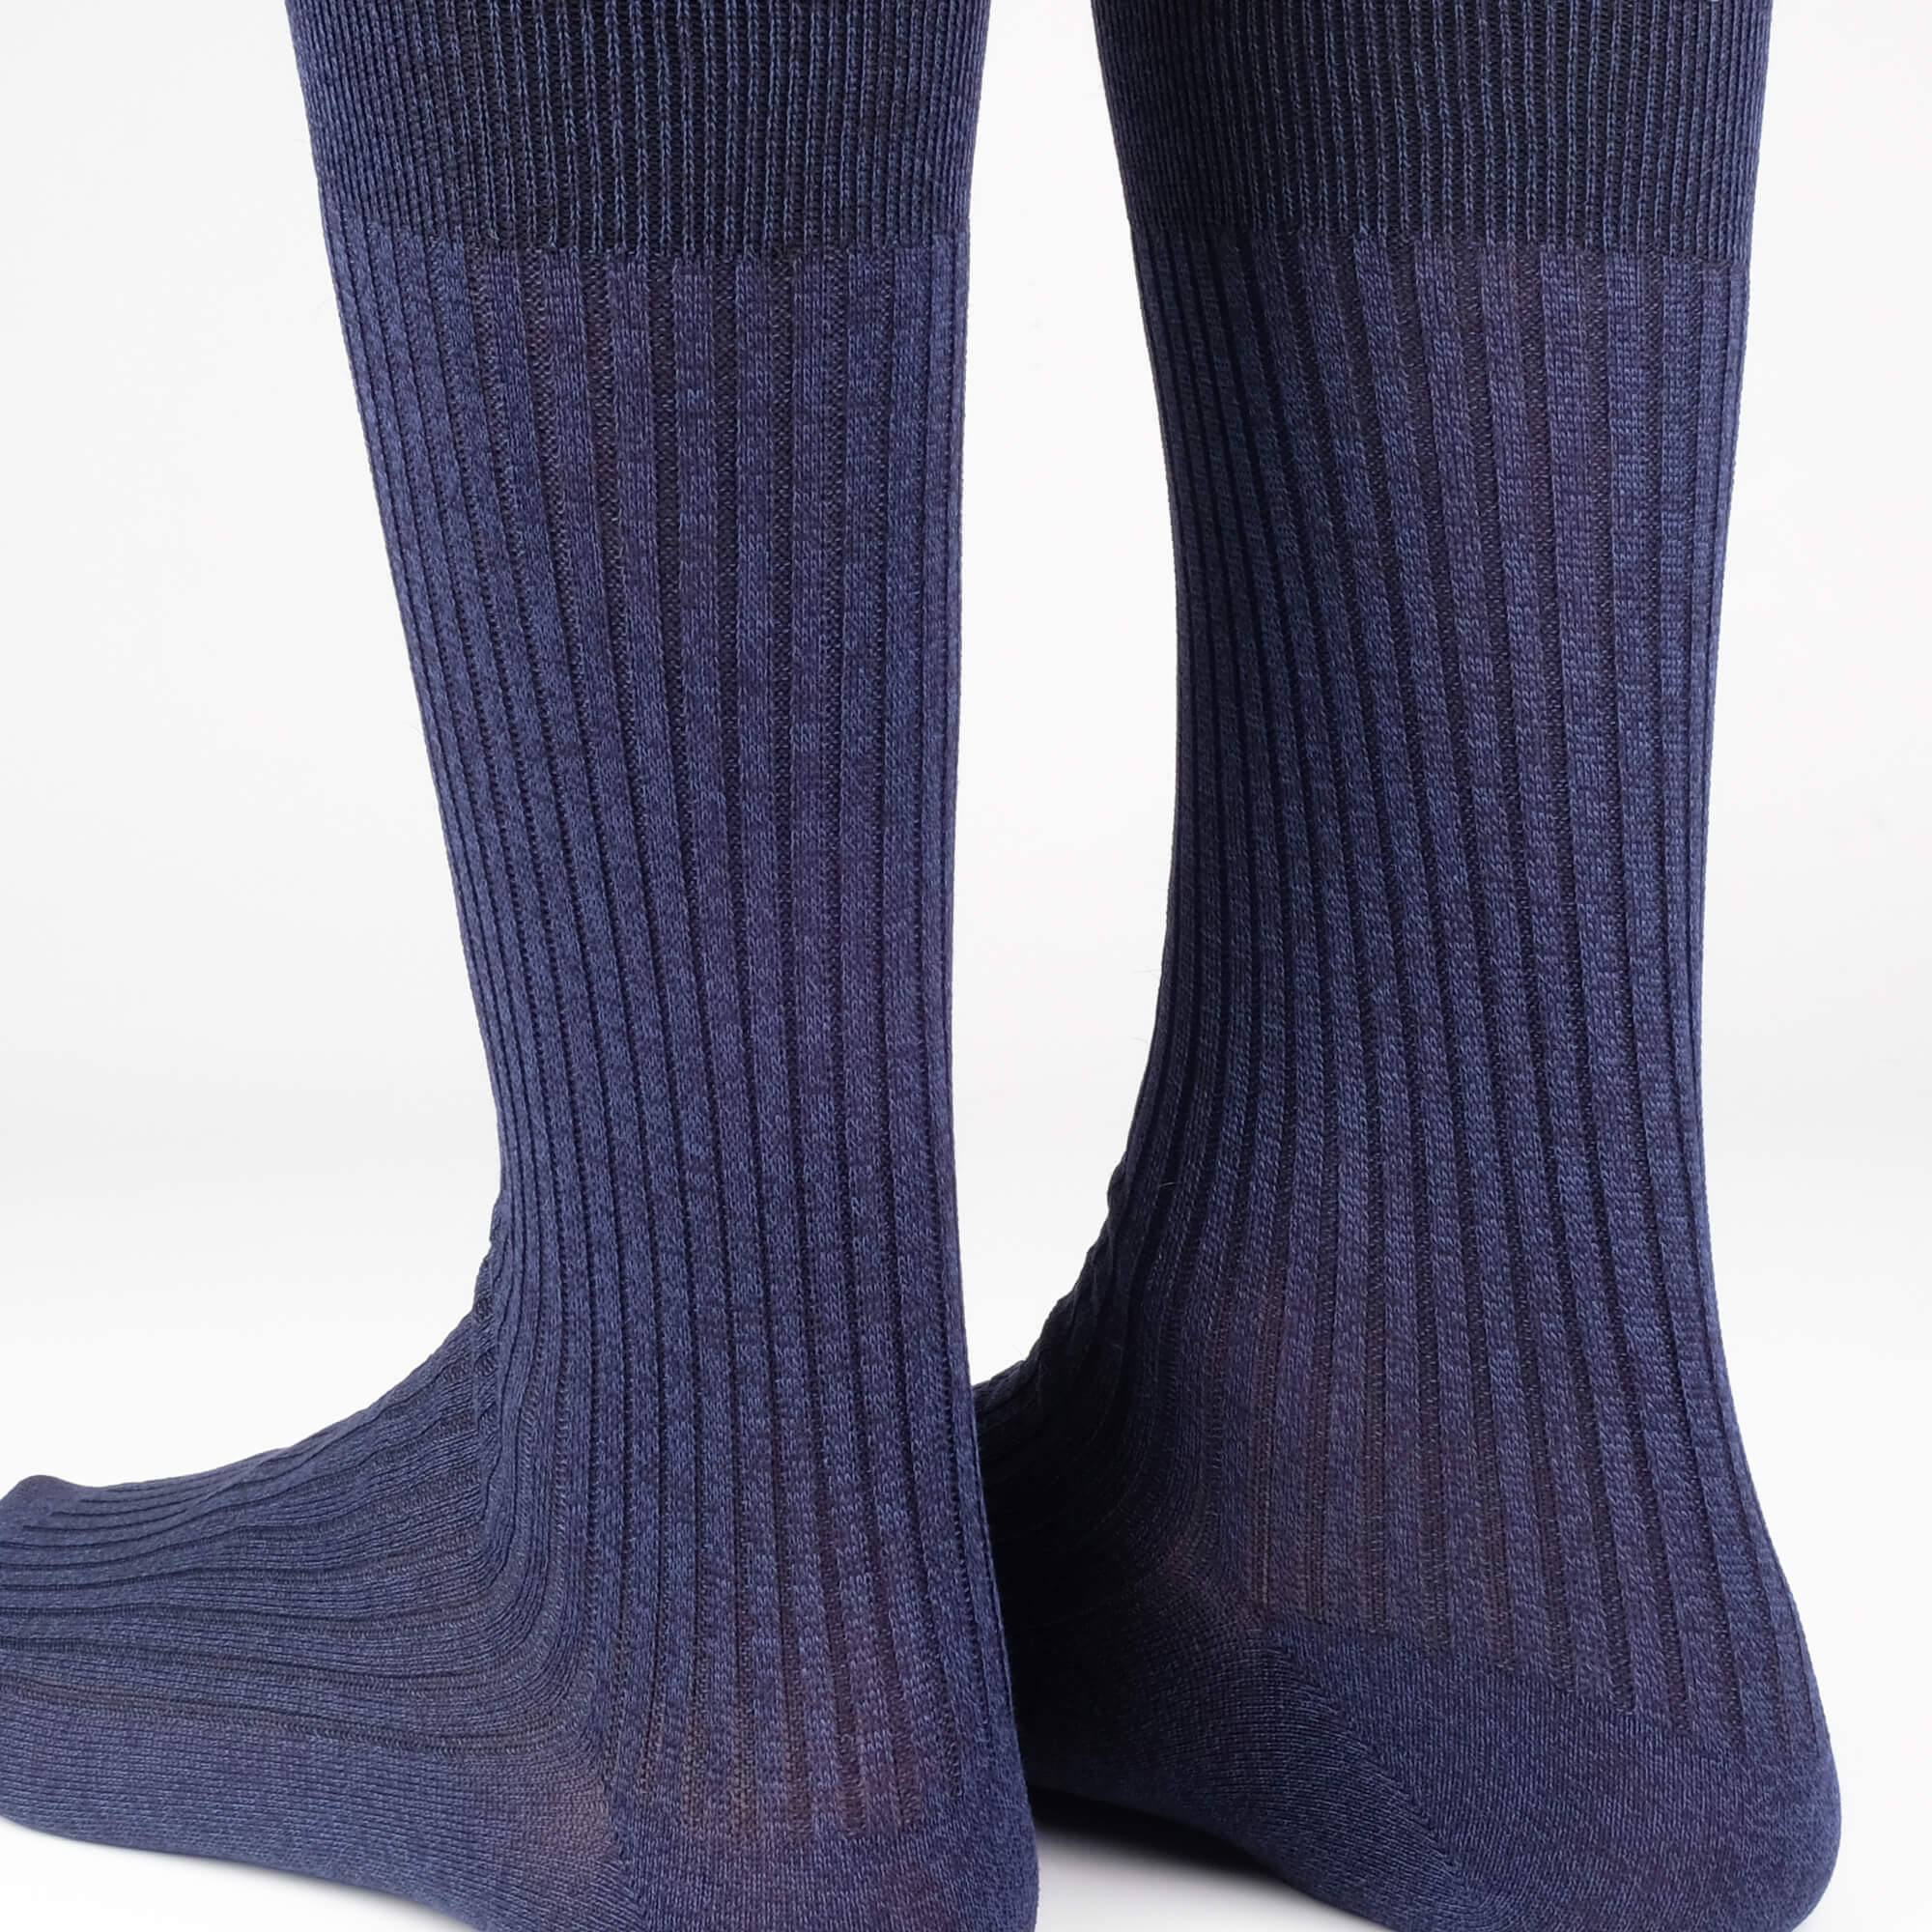 Mens Socks - Thousand Ribs Men's Socks - Blue⎪Etiquette Clothiers